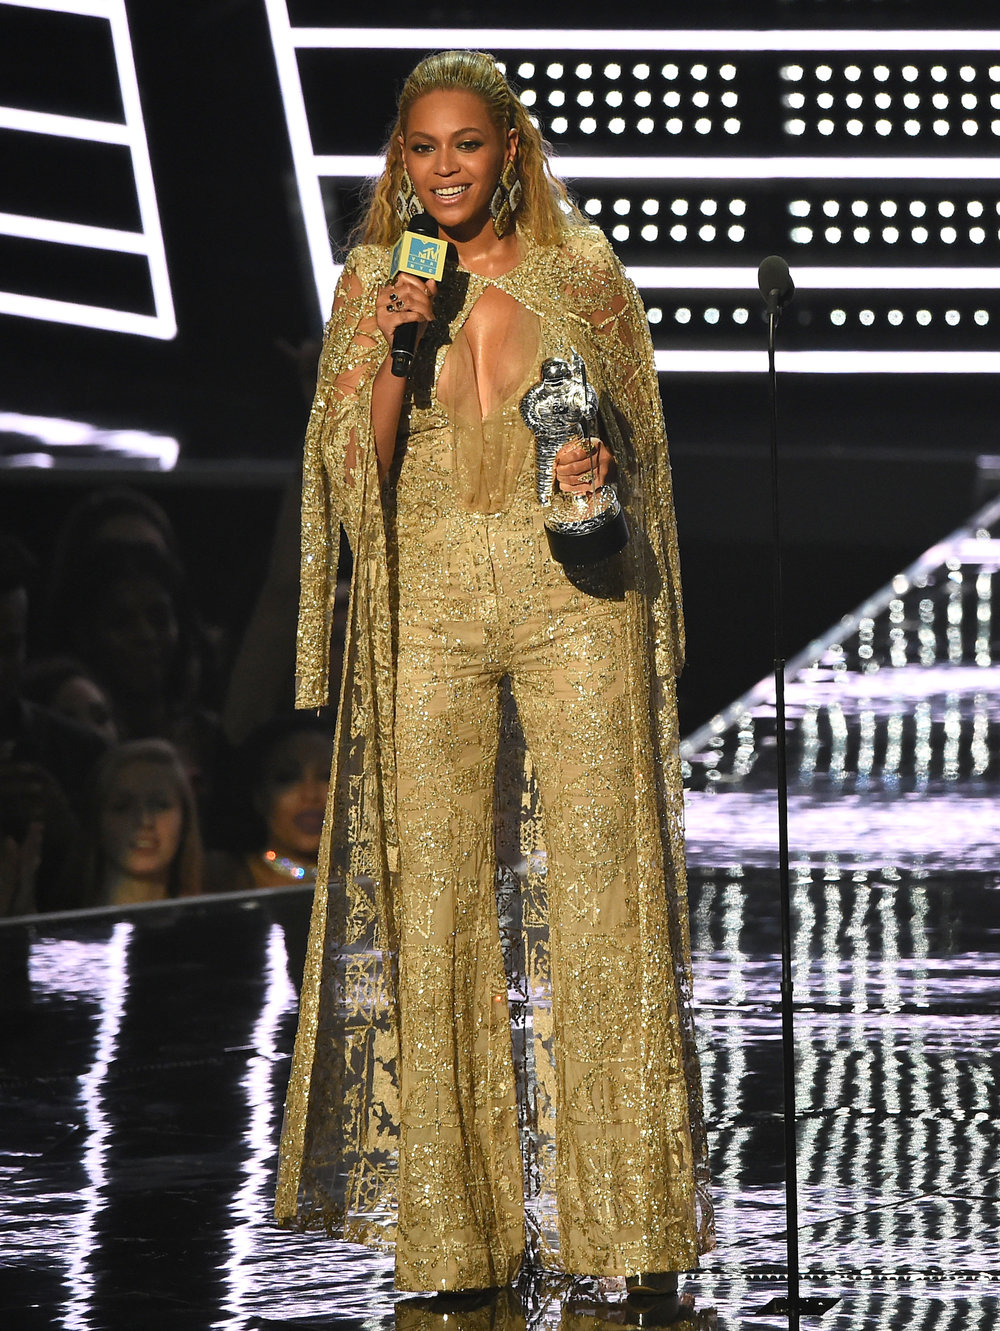 """Beyonce accepts the award for best female video for """"Hold Up"""" at the MTV Video Music Awards at Madison Square Garden on Sunday, Aug. 28, 2016, in New York. (  Charles Sykes/Invision/AP)"""